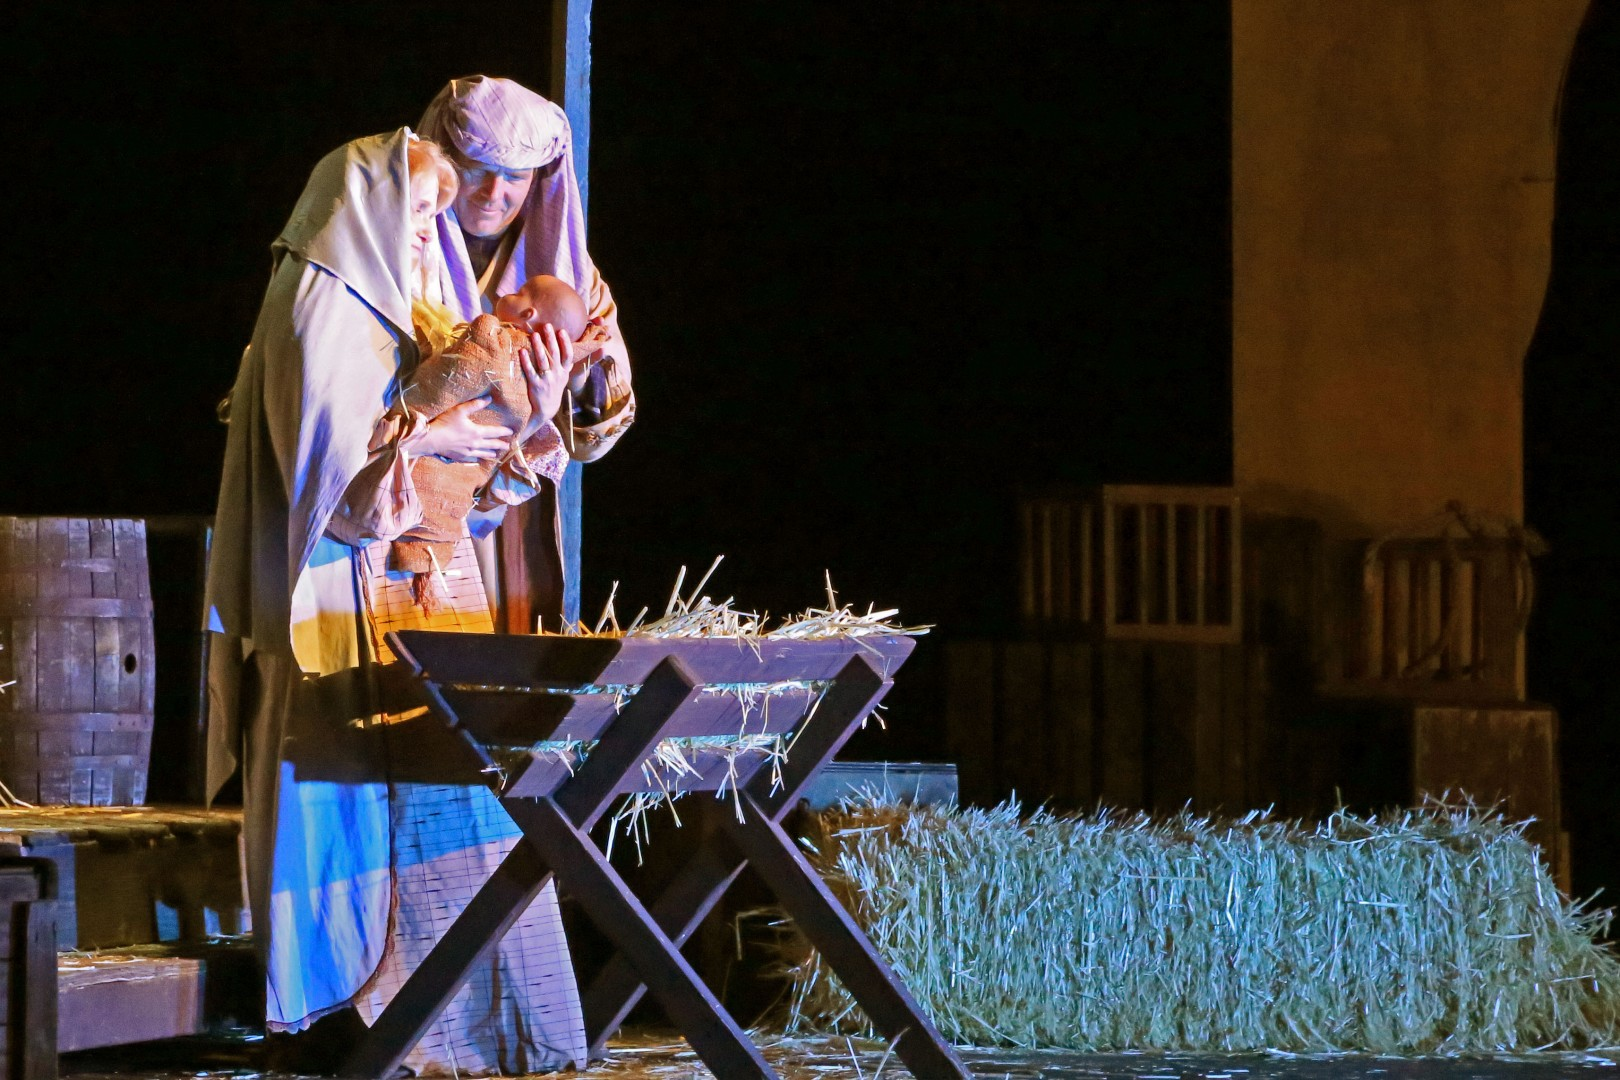 Mary and Joseph wonder at the Christ child in the Live Nativity. Christmas in the Canyon, Tuacahn Amphitheatre, Ivins, Utah, Nov 29, 2013 | Photo by John Teas, St. George